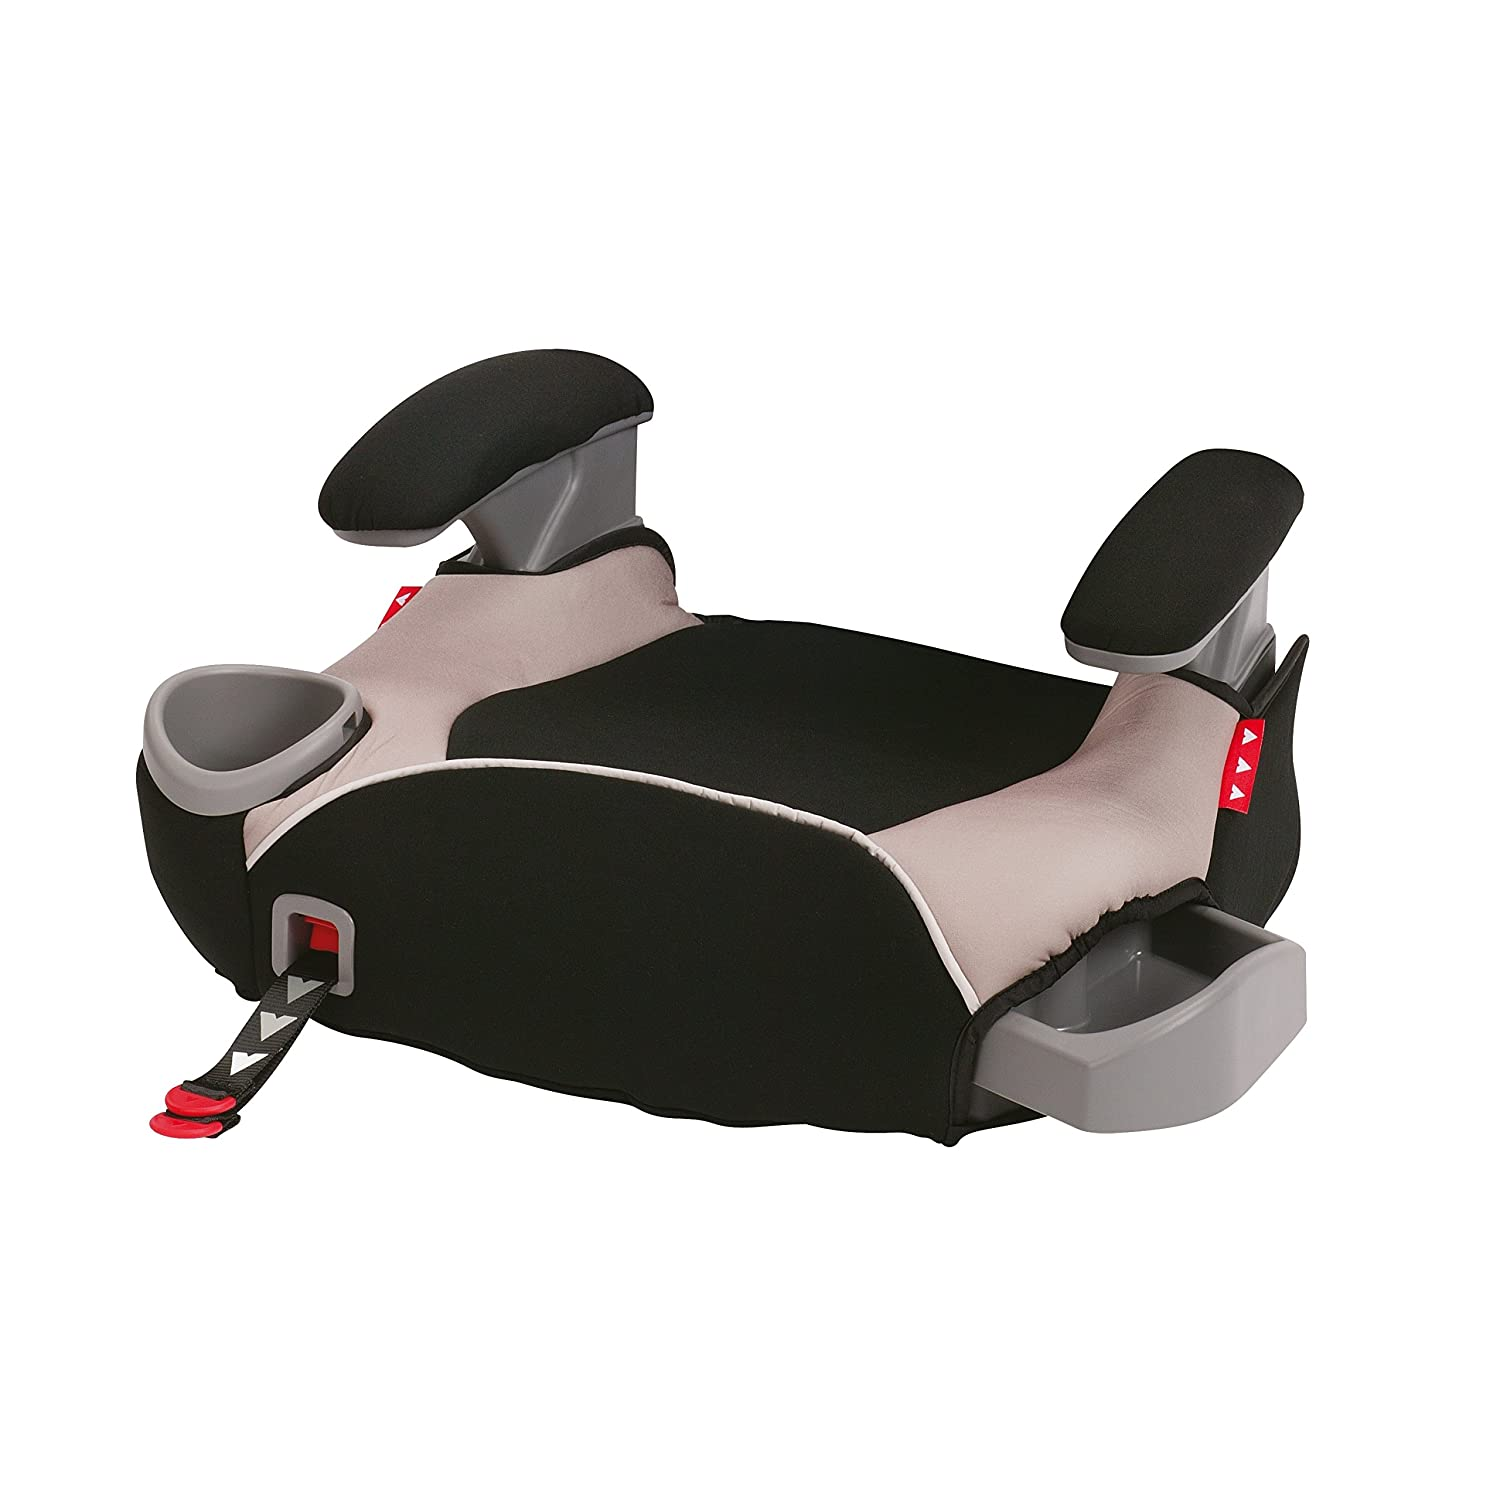 graco affix youth booster seat with latch system atomic one size ebay. Black Bedroom Furniture Sets. Home Design Ideas